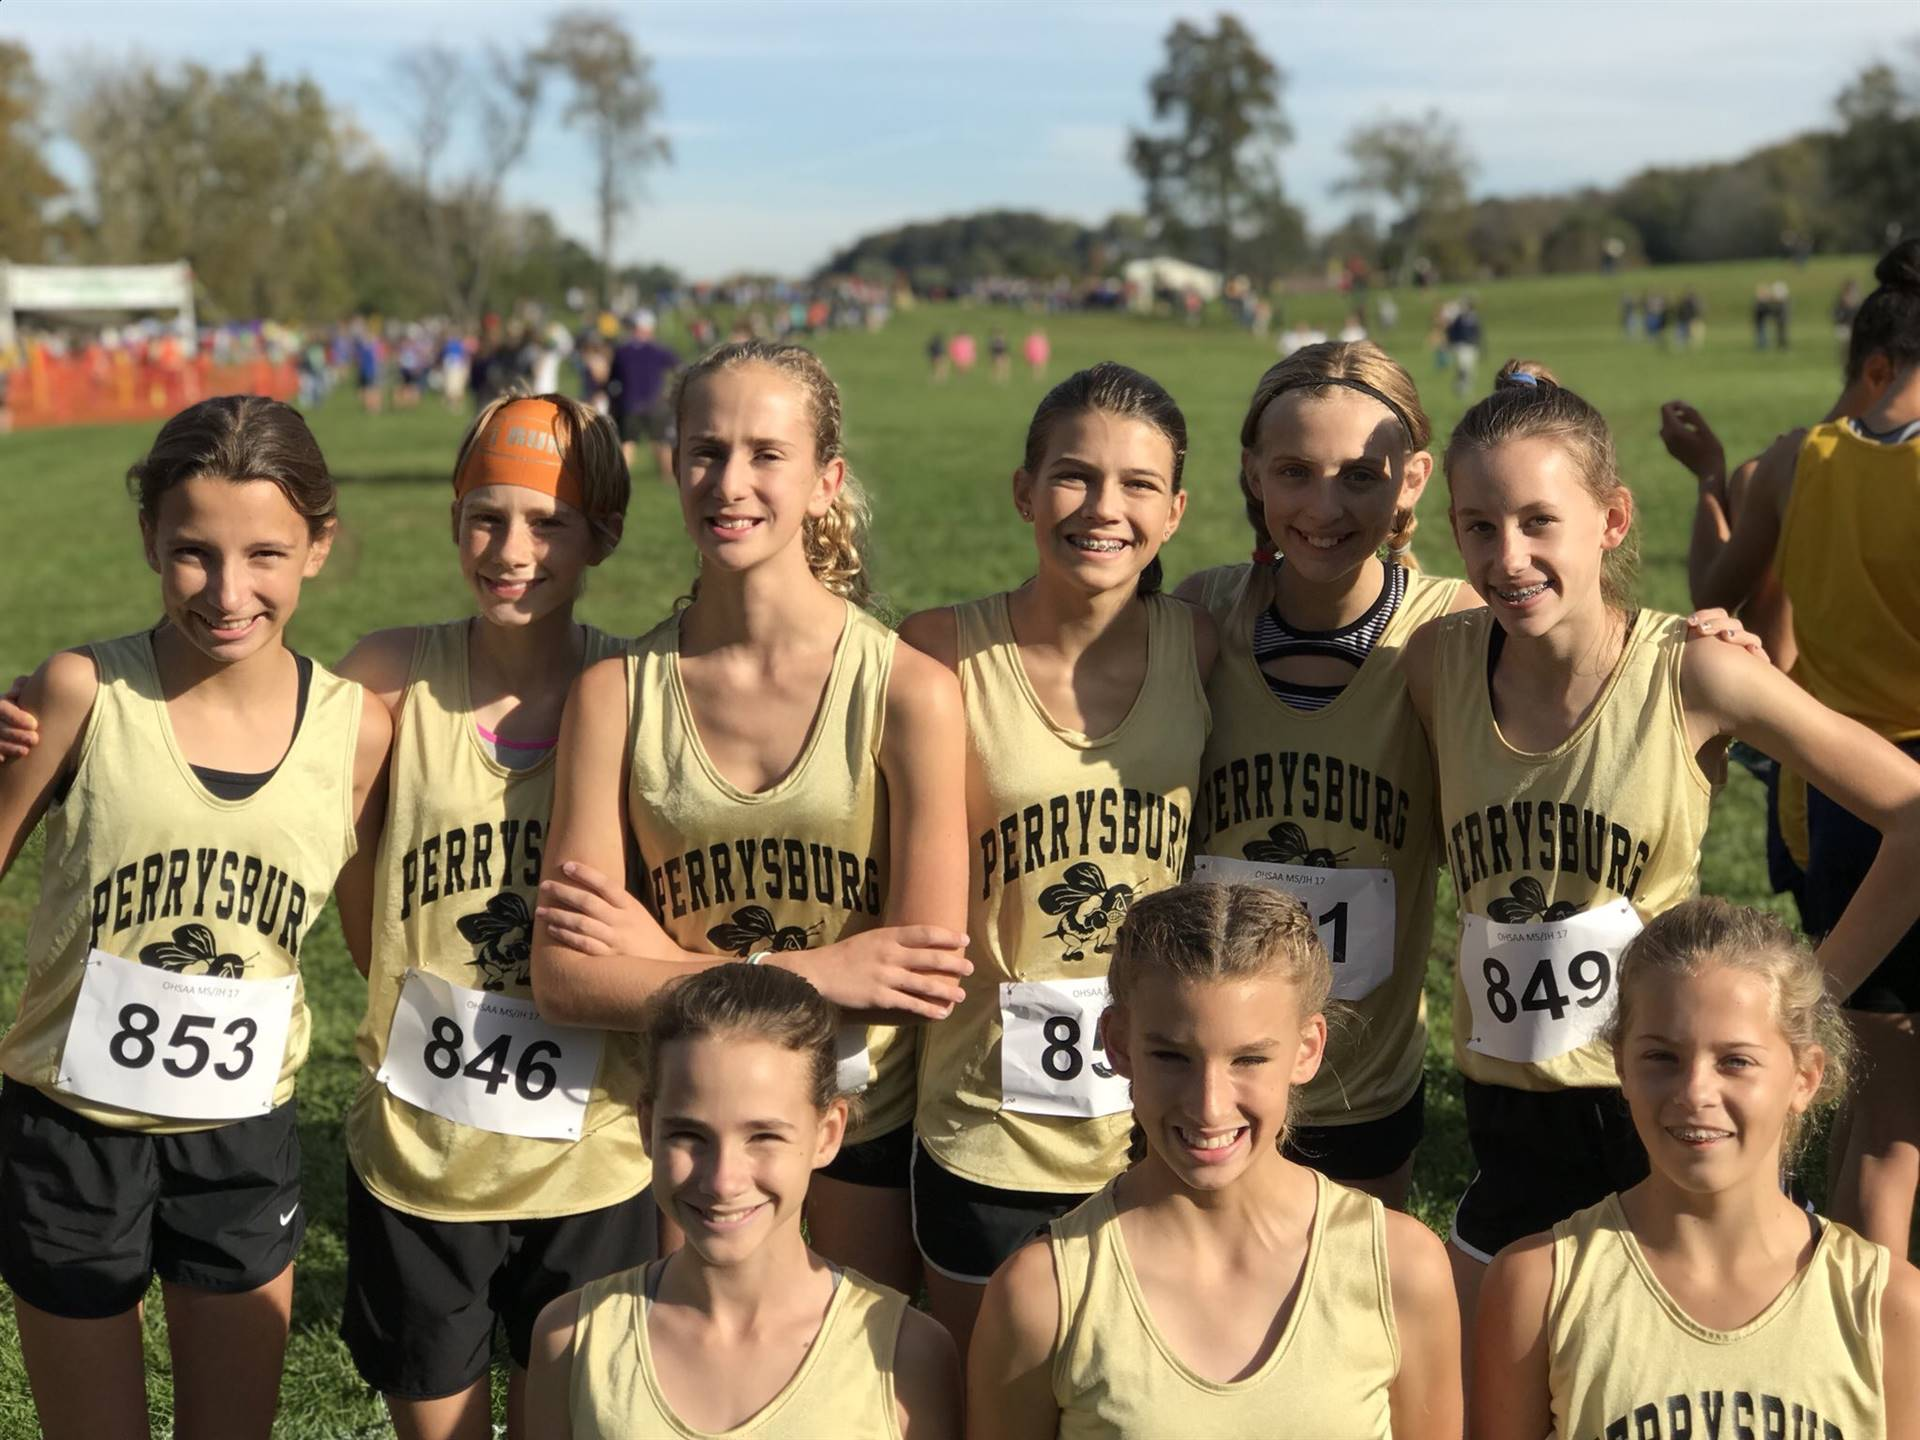 The PJHS Girls Cross Country team competed at the 2017 Junior High State Cross Country Meet in Lanca